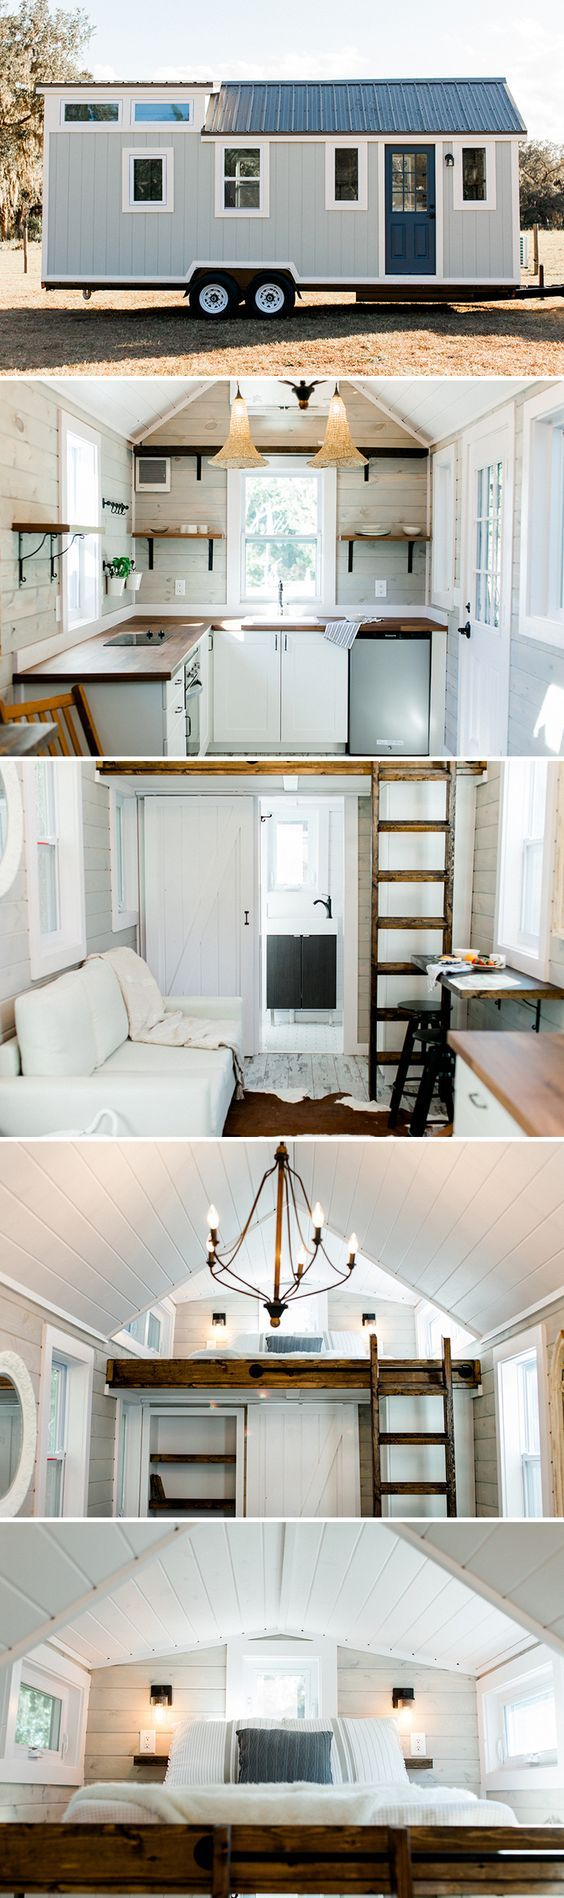 380 best Tiny homes images on Pinterest | Cottage, Home ideas and ...